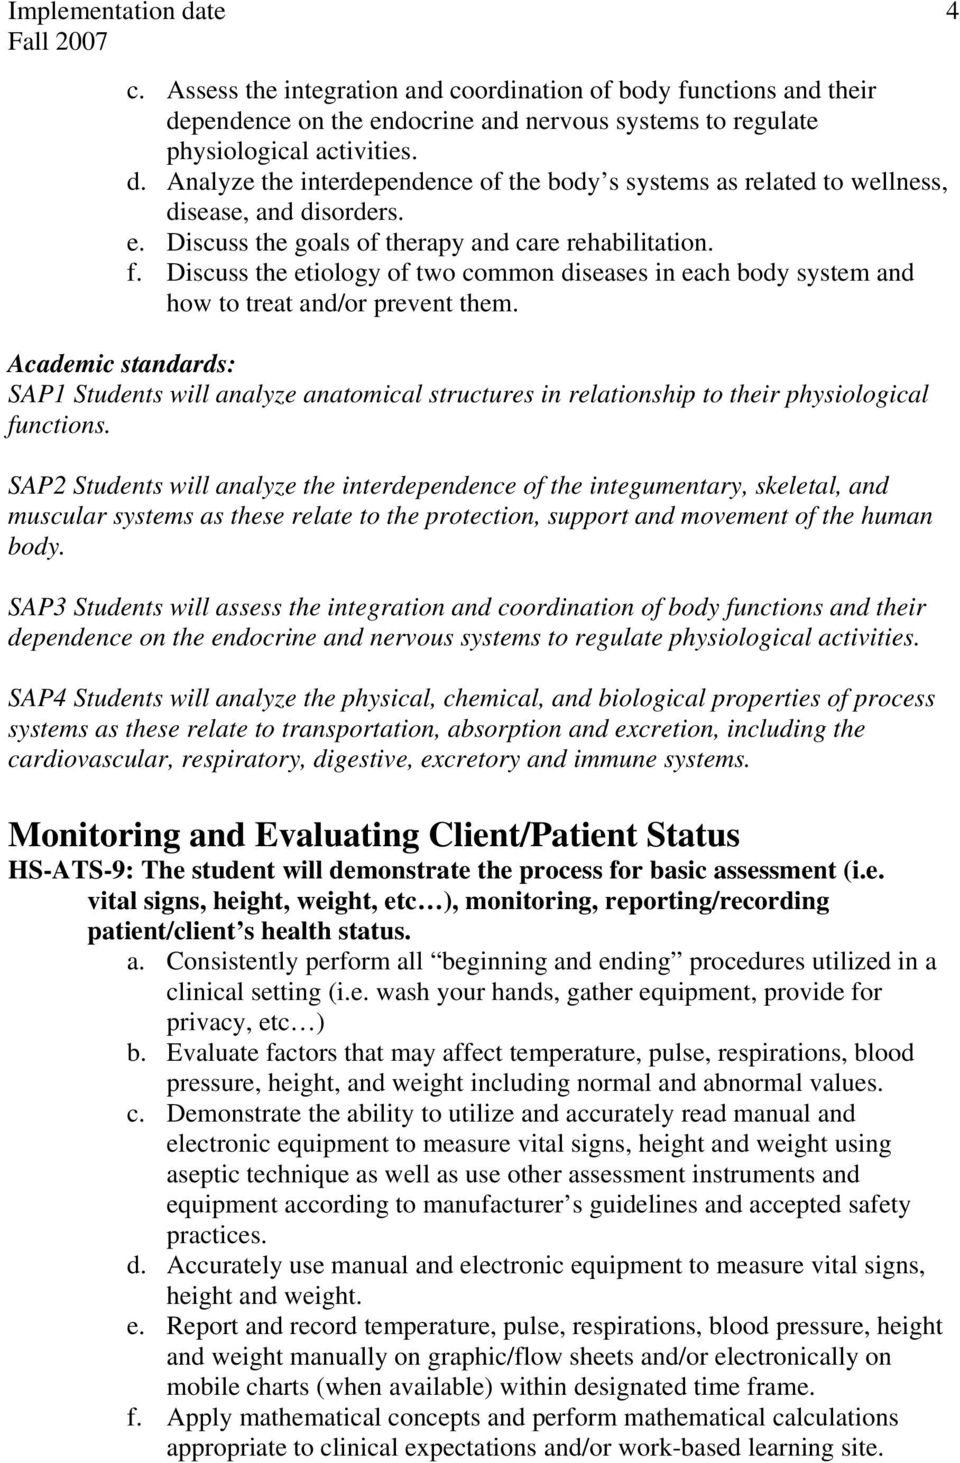 Academic standards: SAP1 Students will analyze anatomical structures in relationship to their physiological functions.